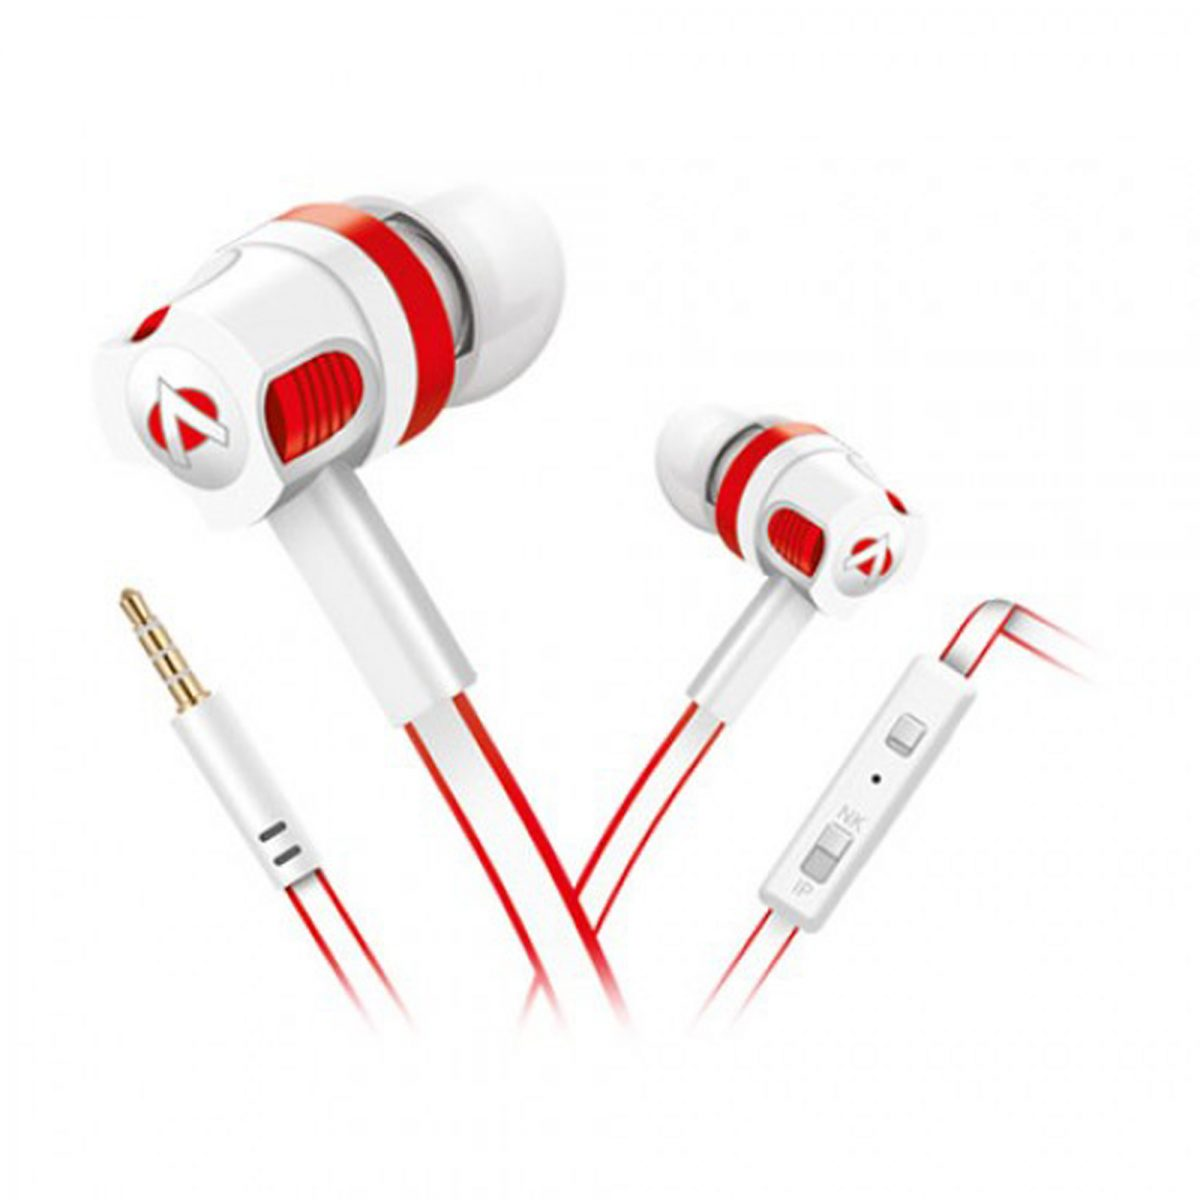 Audionic White & Red Flate Wire Earphone With Extra Bass - T-50